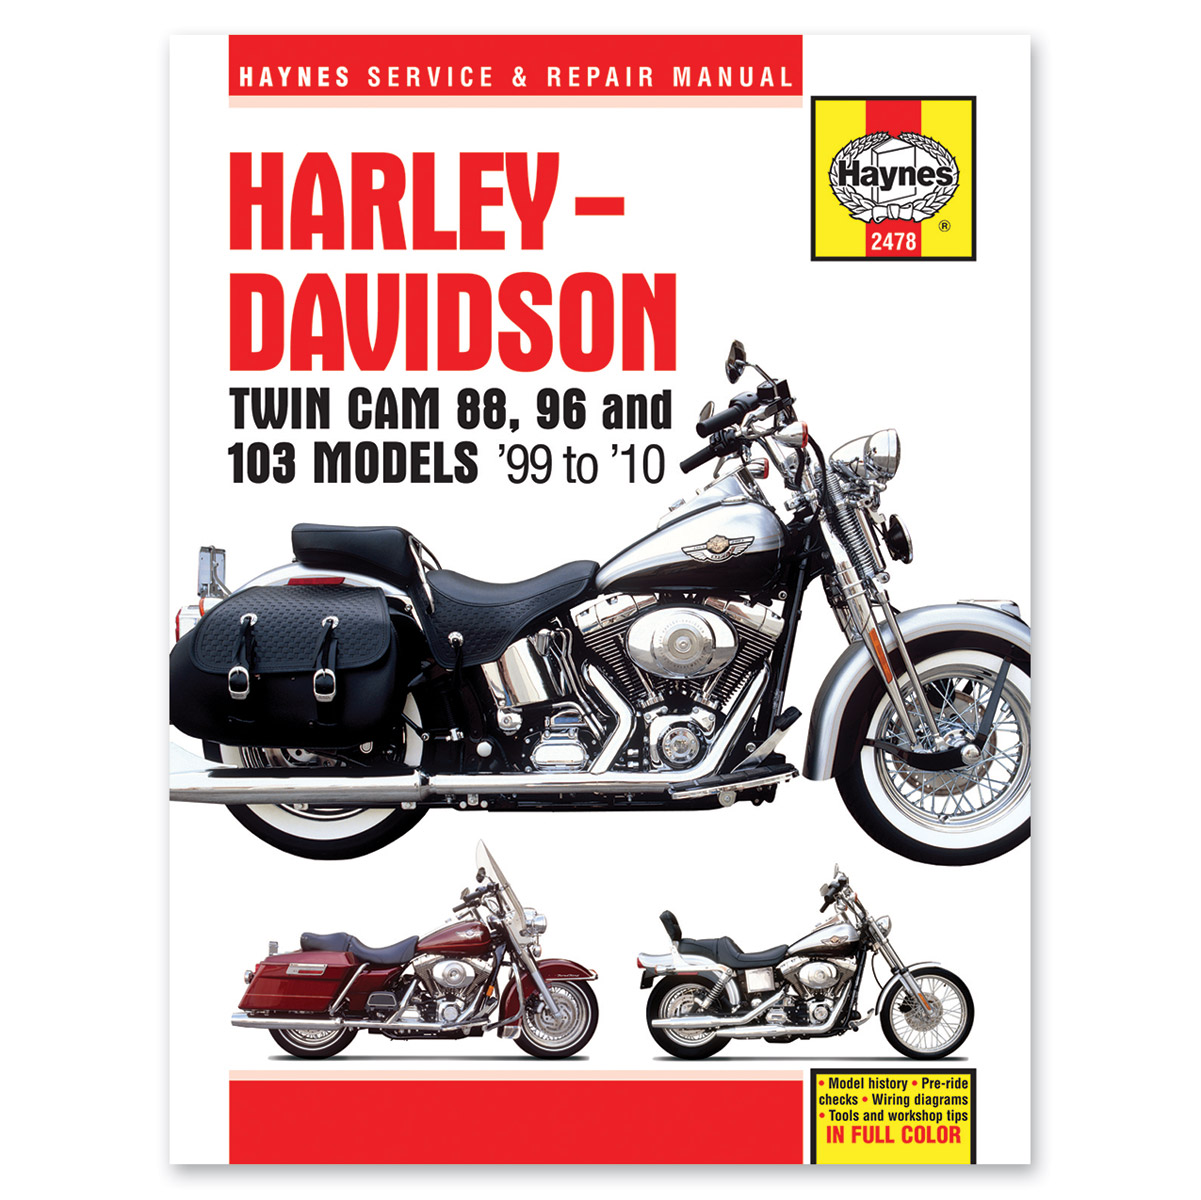 harley davidson flhr owners manual how to and user guide rh taxibermuda co 2009 harley davidson road king owners manual pdf 2009 road king owners manual online